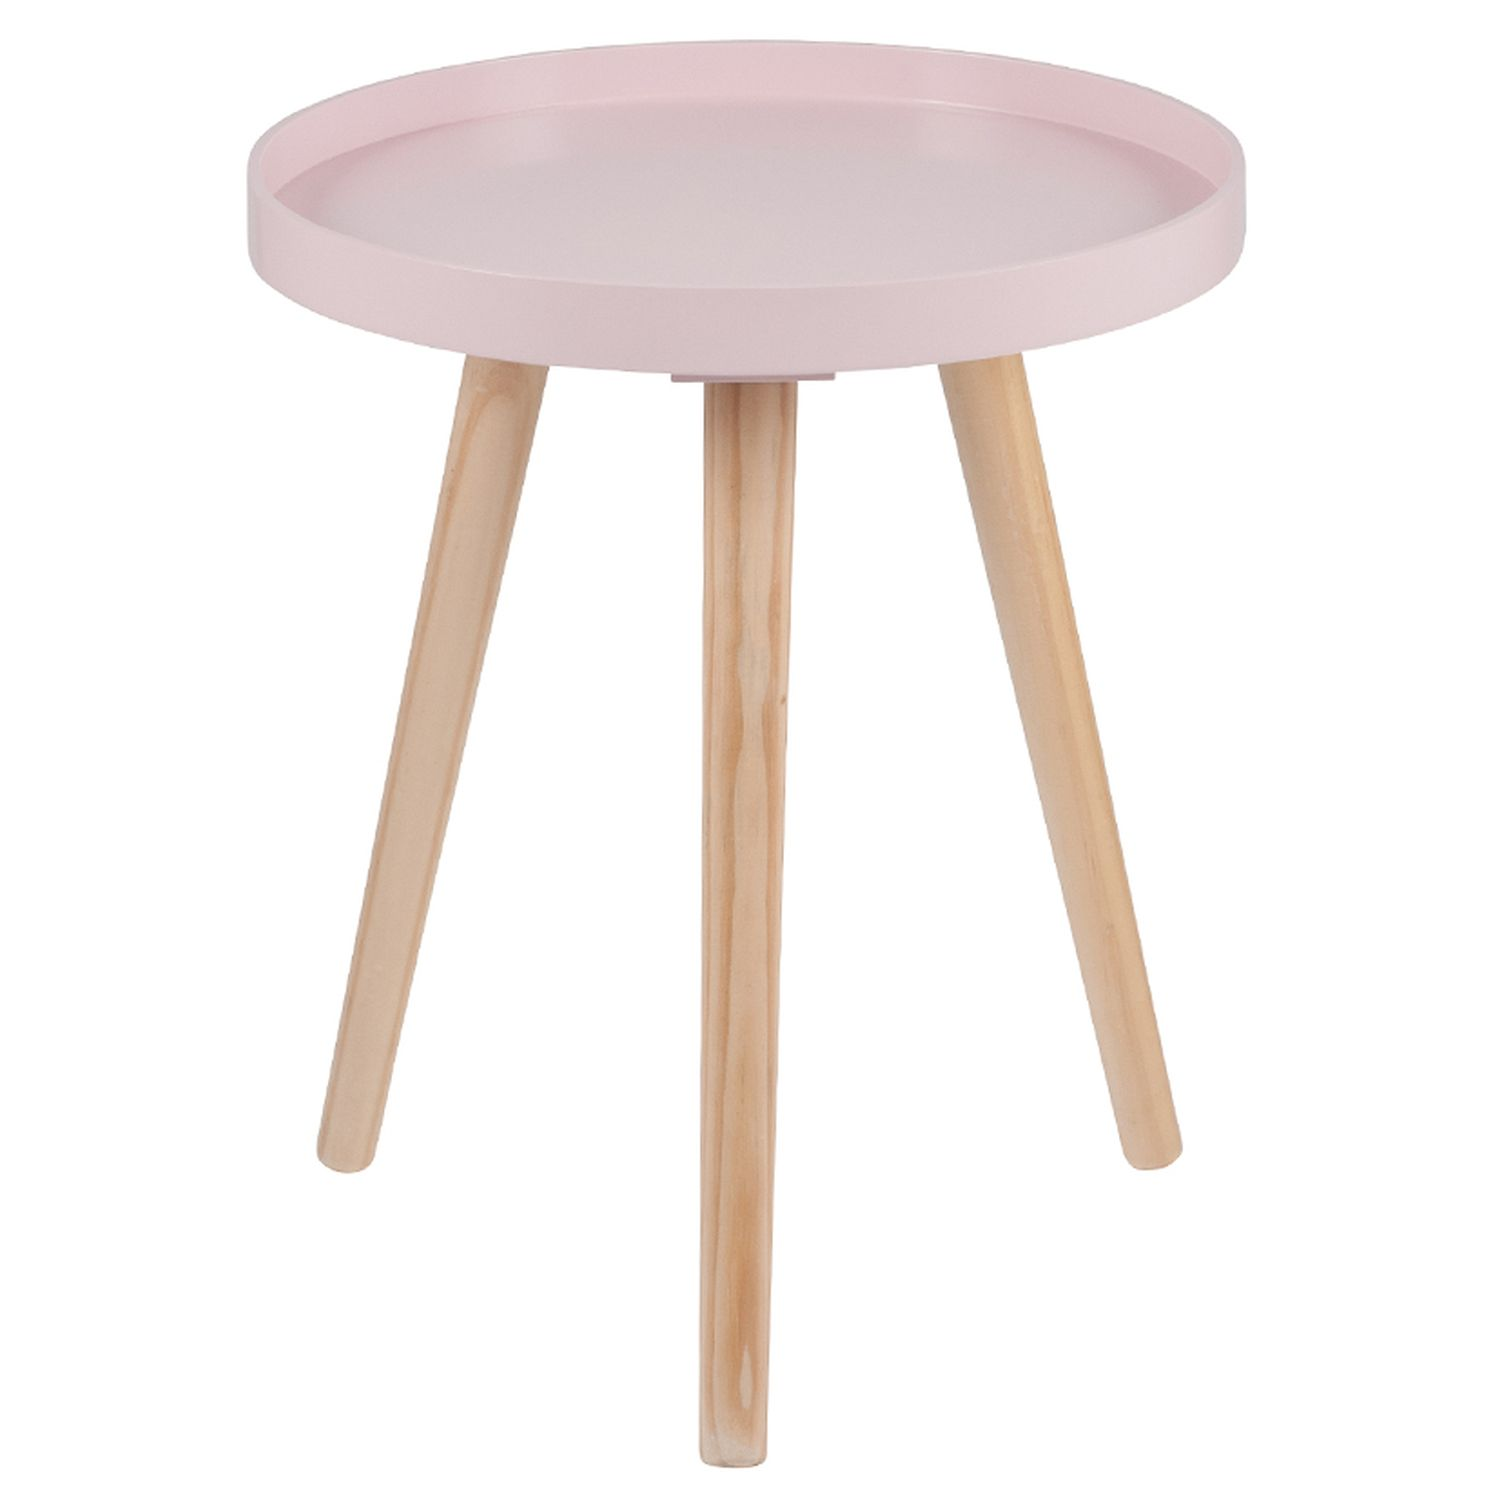 Image of Casa Halston Round Table, Pink, Small